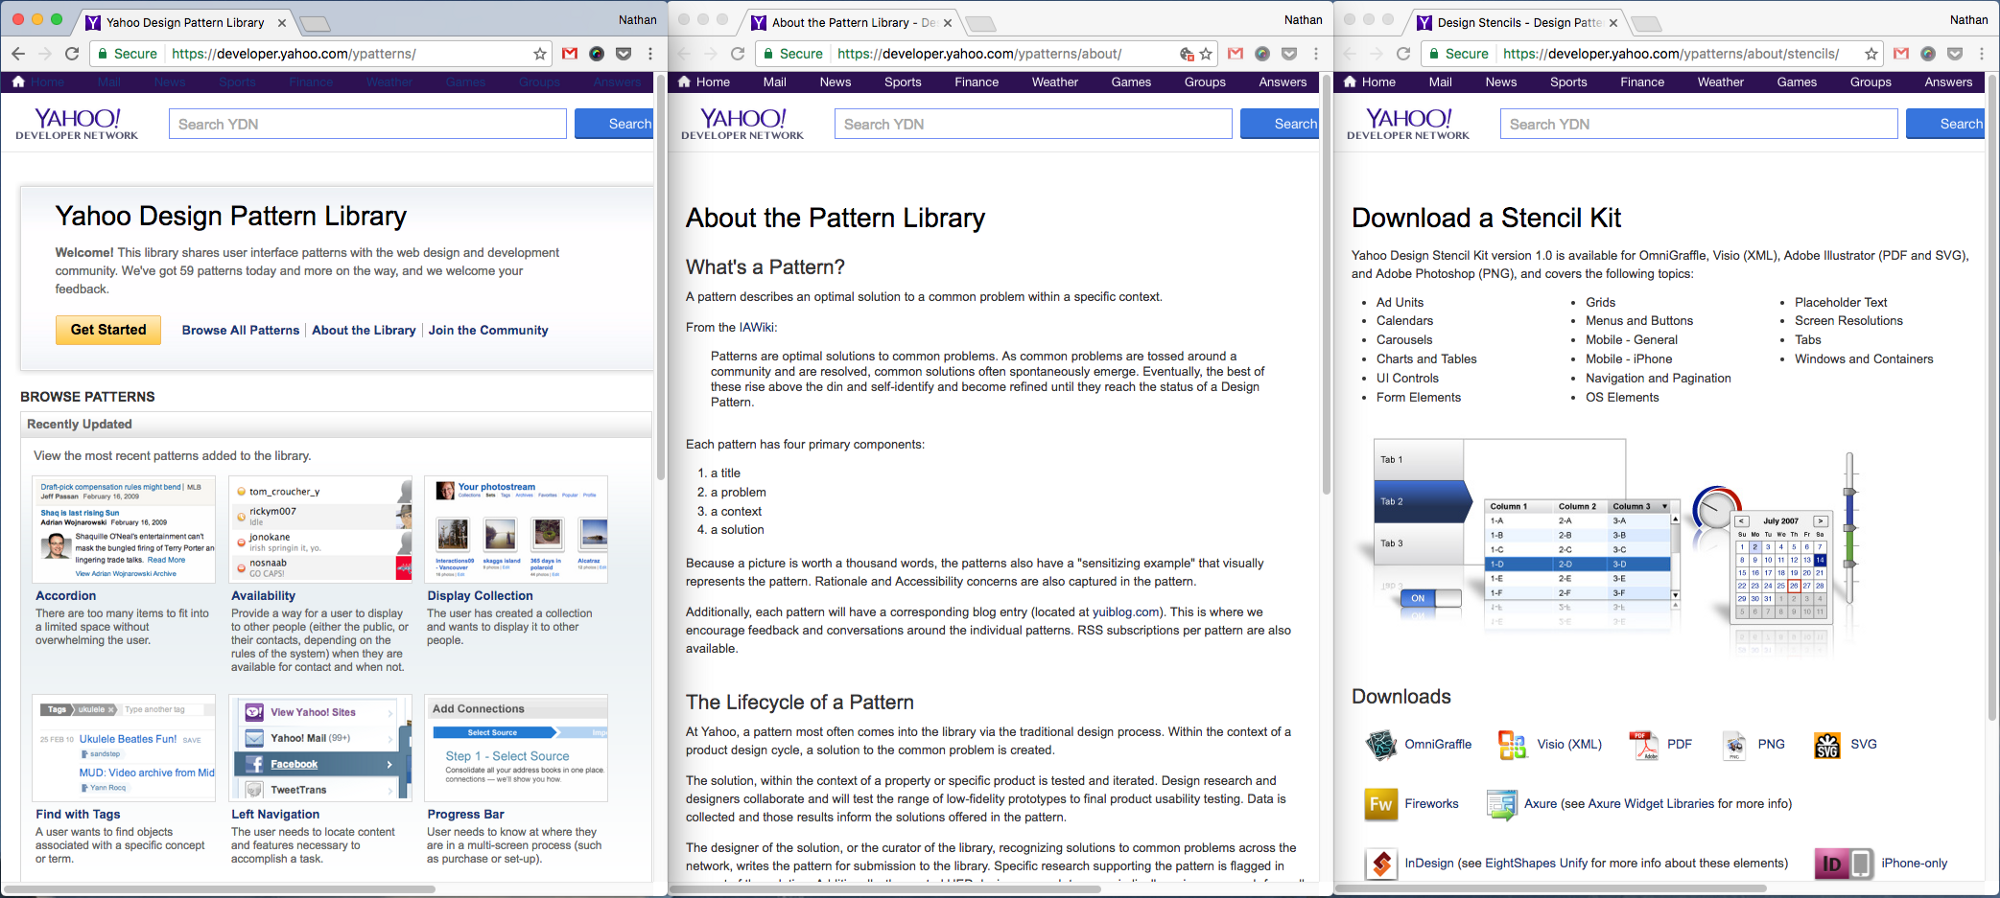 Screenshots of the Yahoo Pattern Library